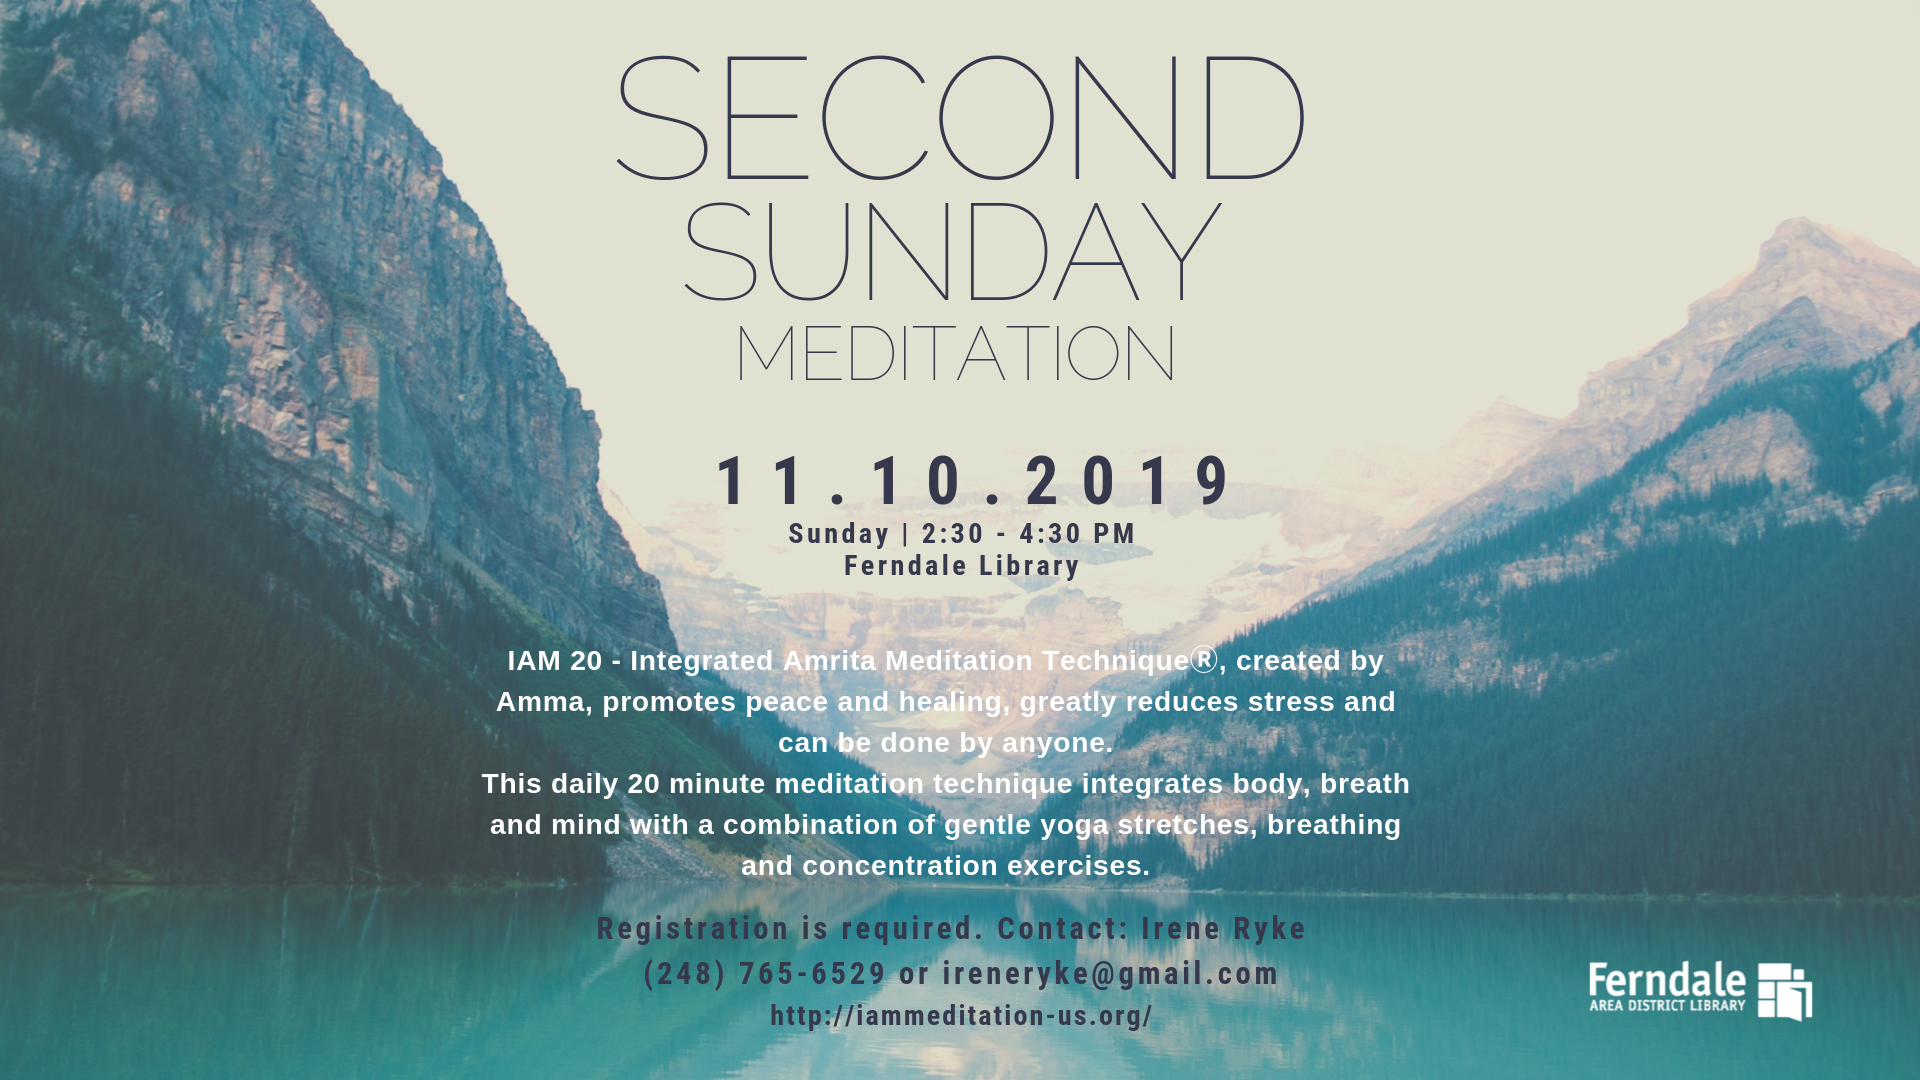 CANCELLED- Second Sunday Meditation